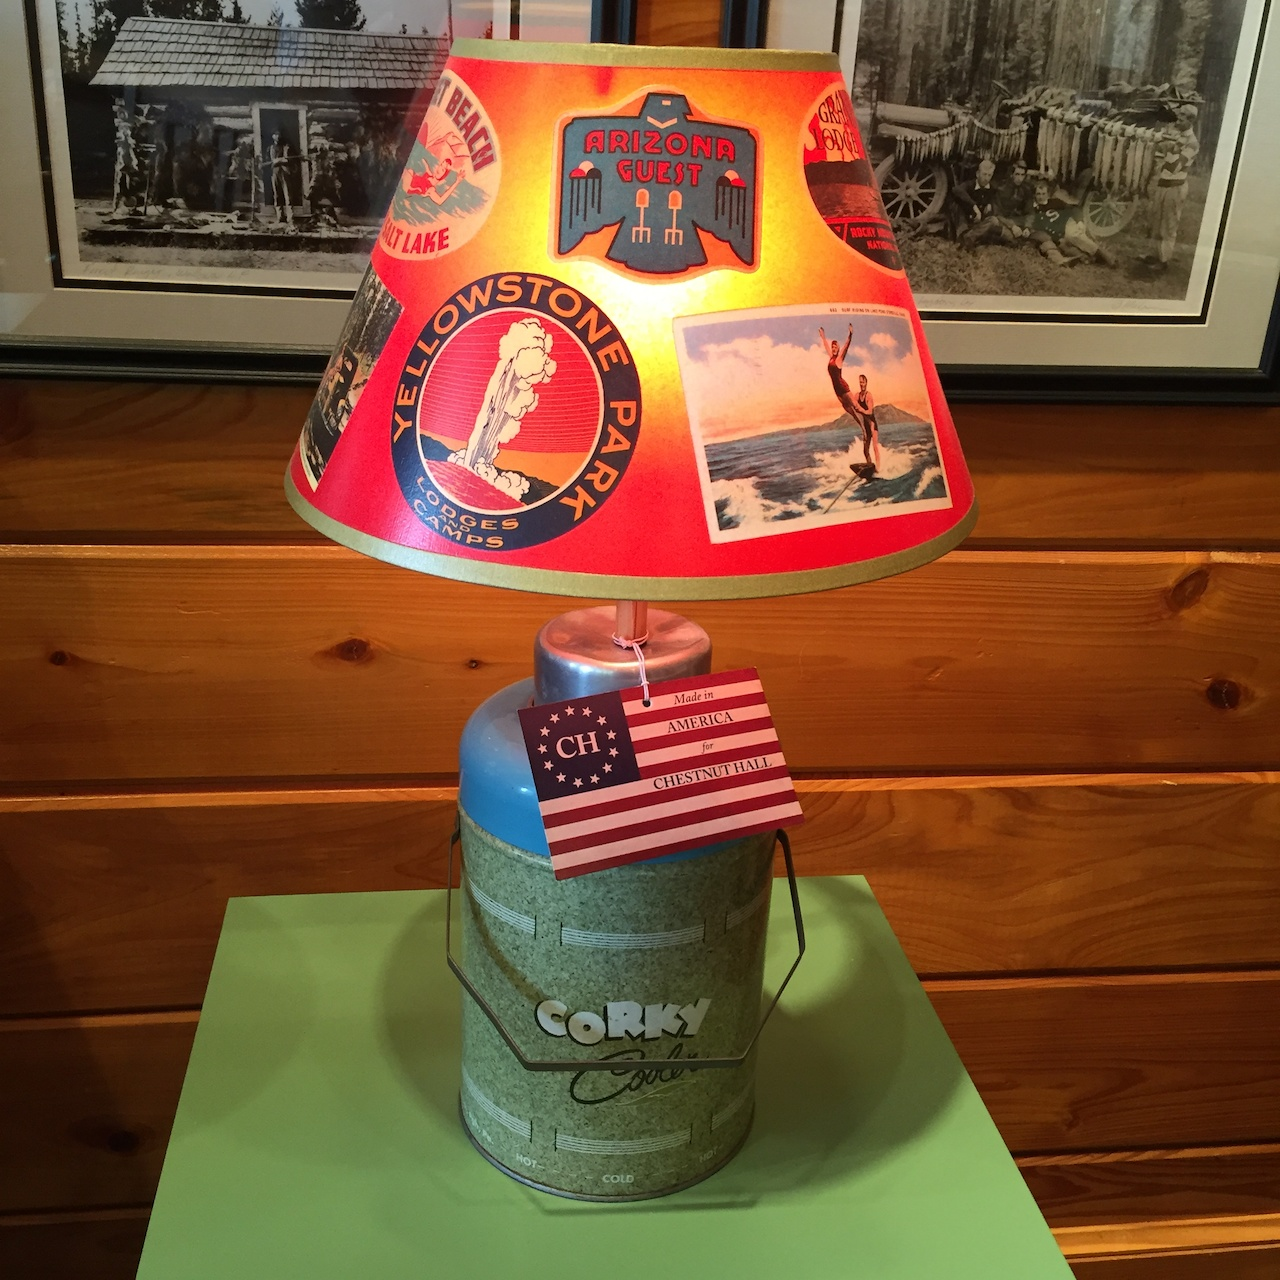 Handmade lamp from At The Cabin, $359.